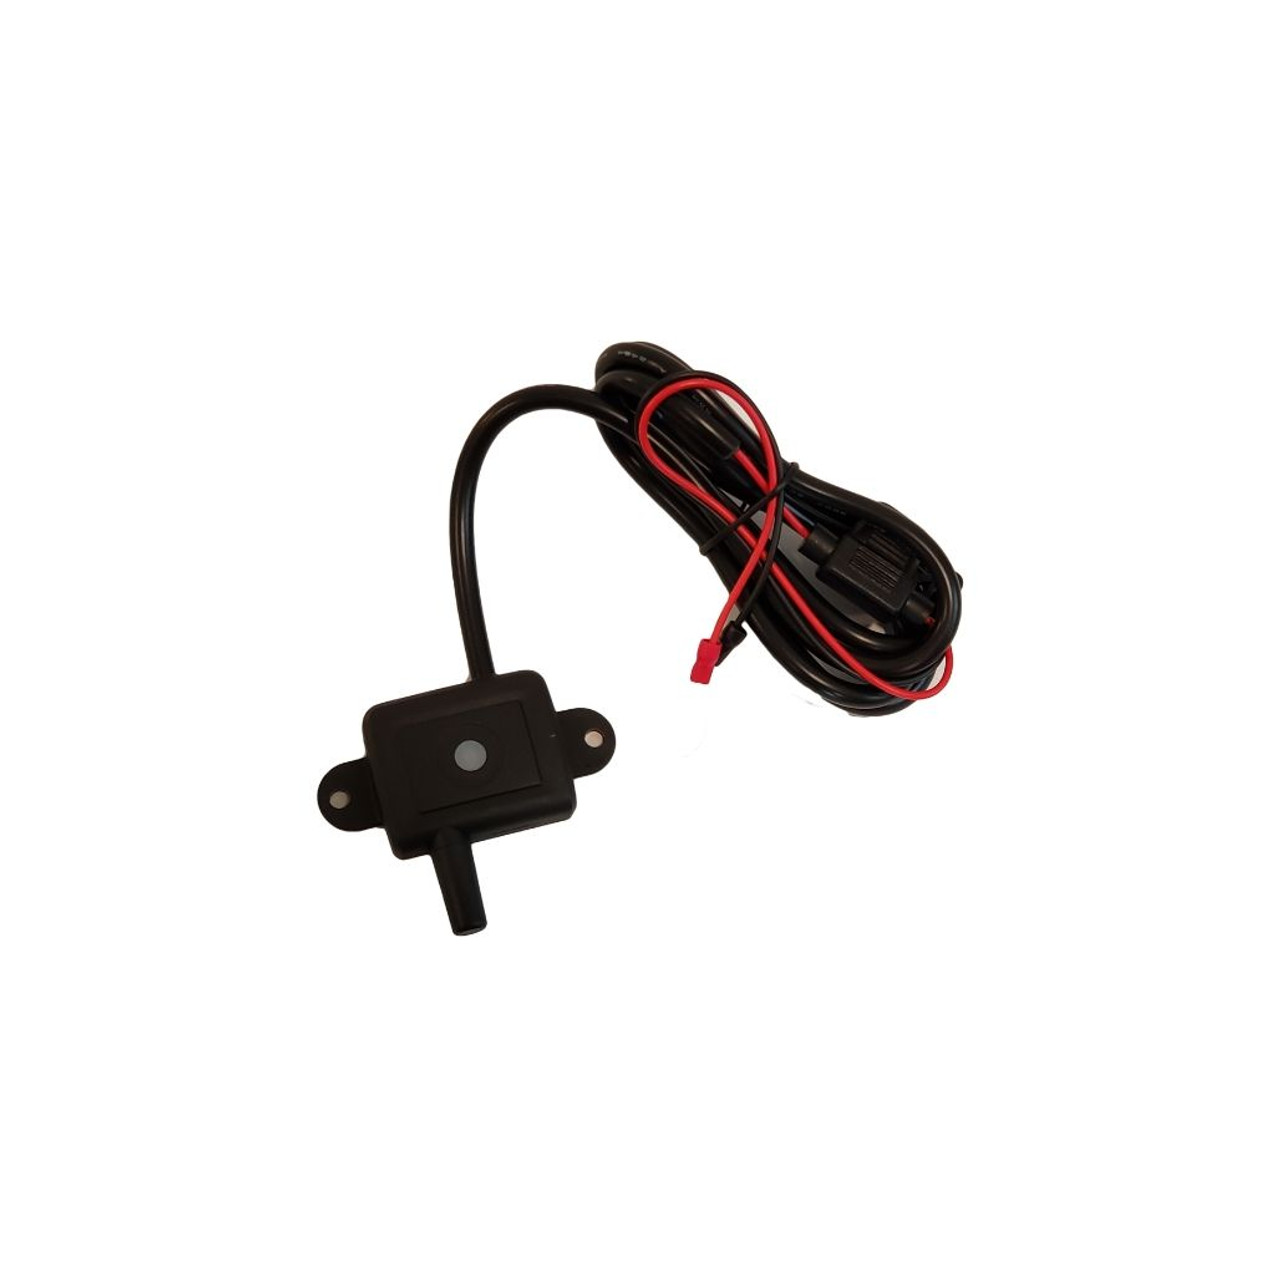 TST 507 TPMS with FLOW THRU Sensors (10) and Repeater